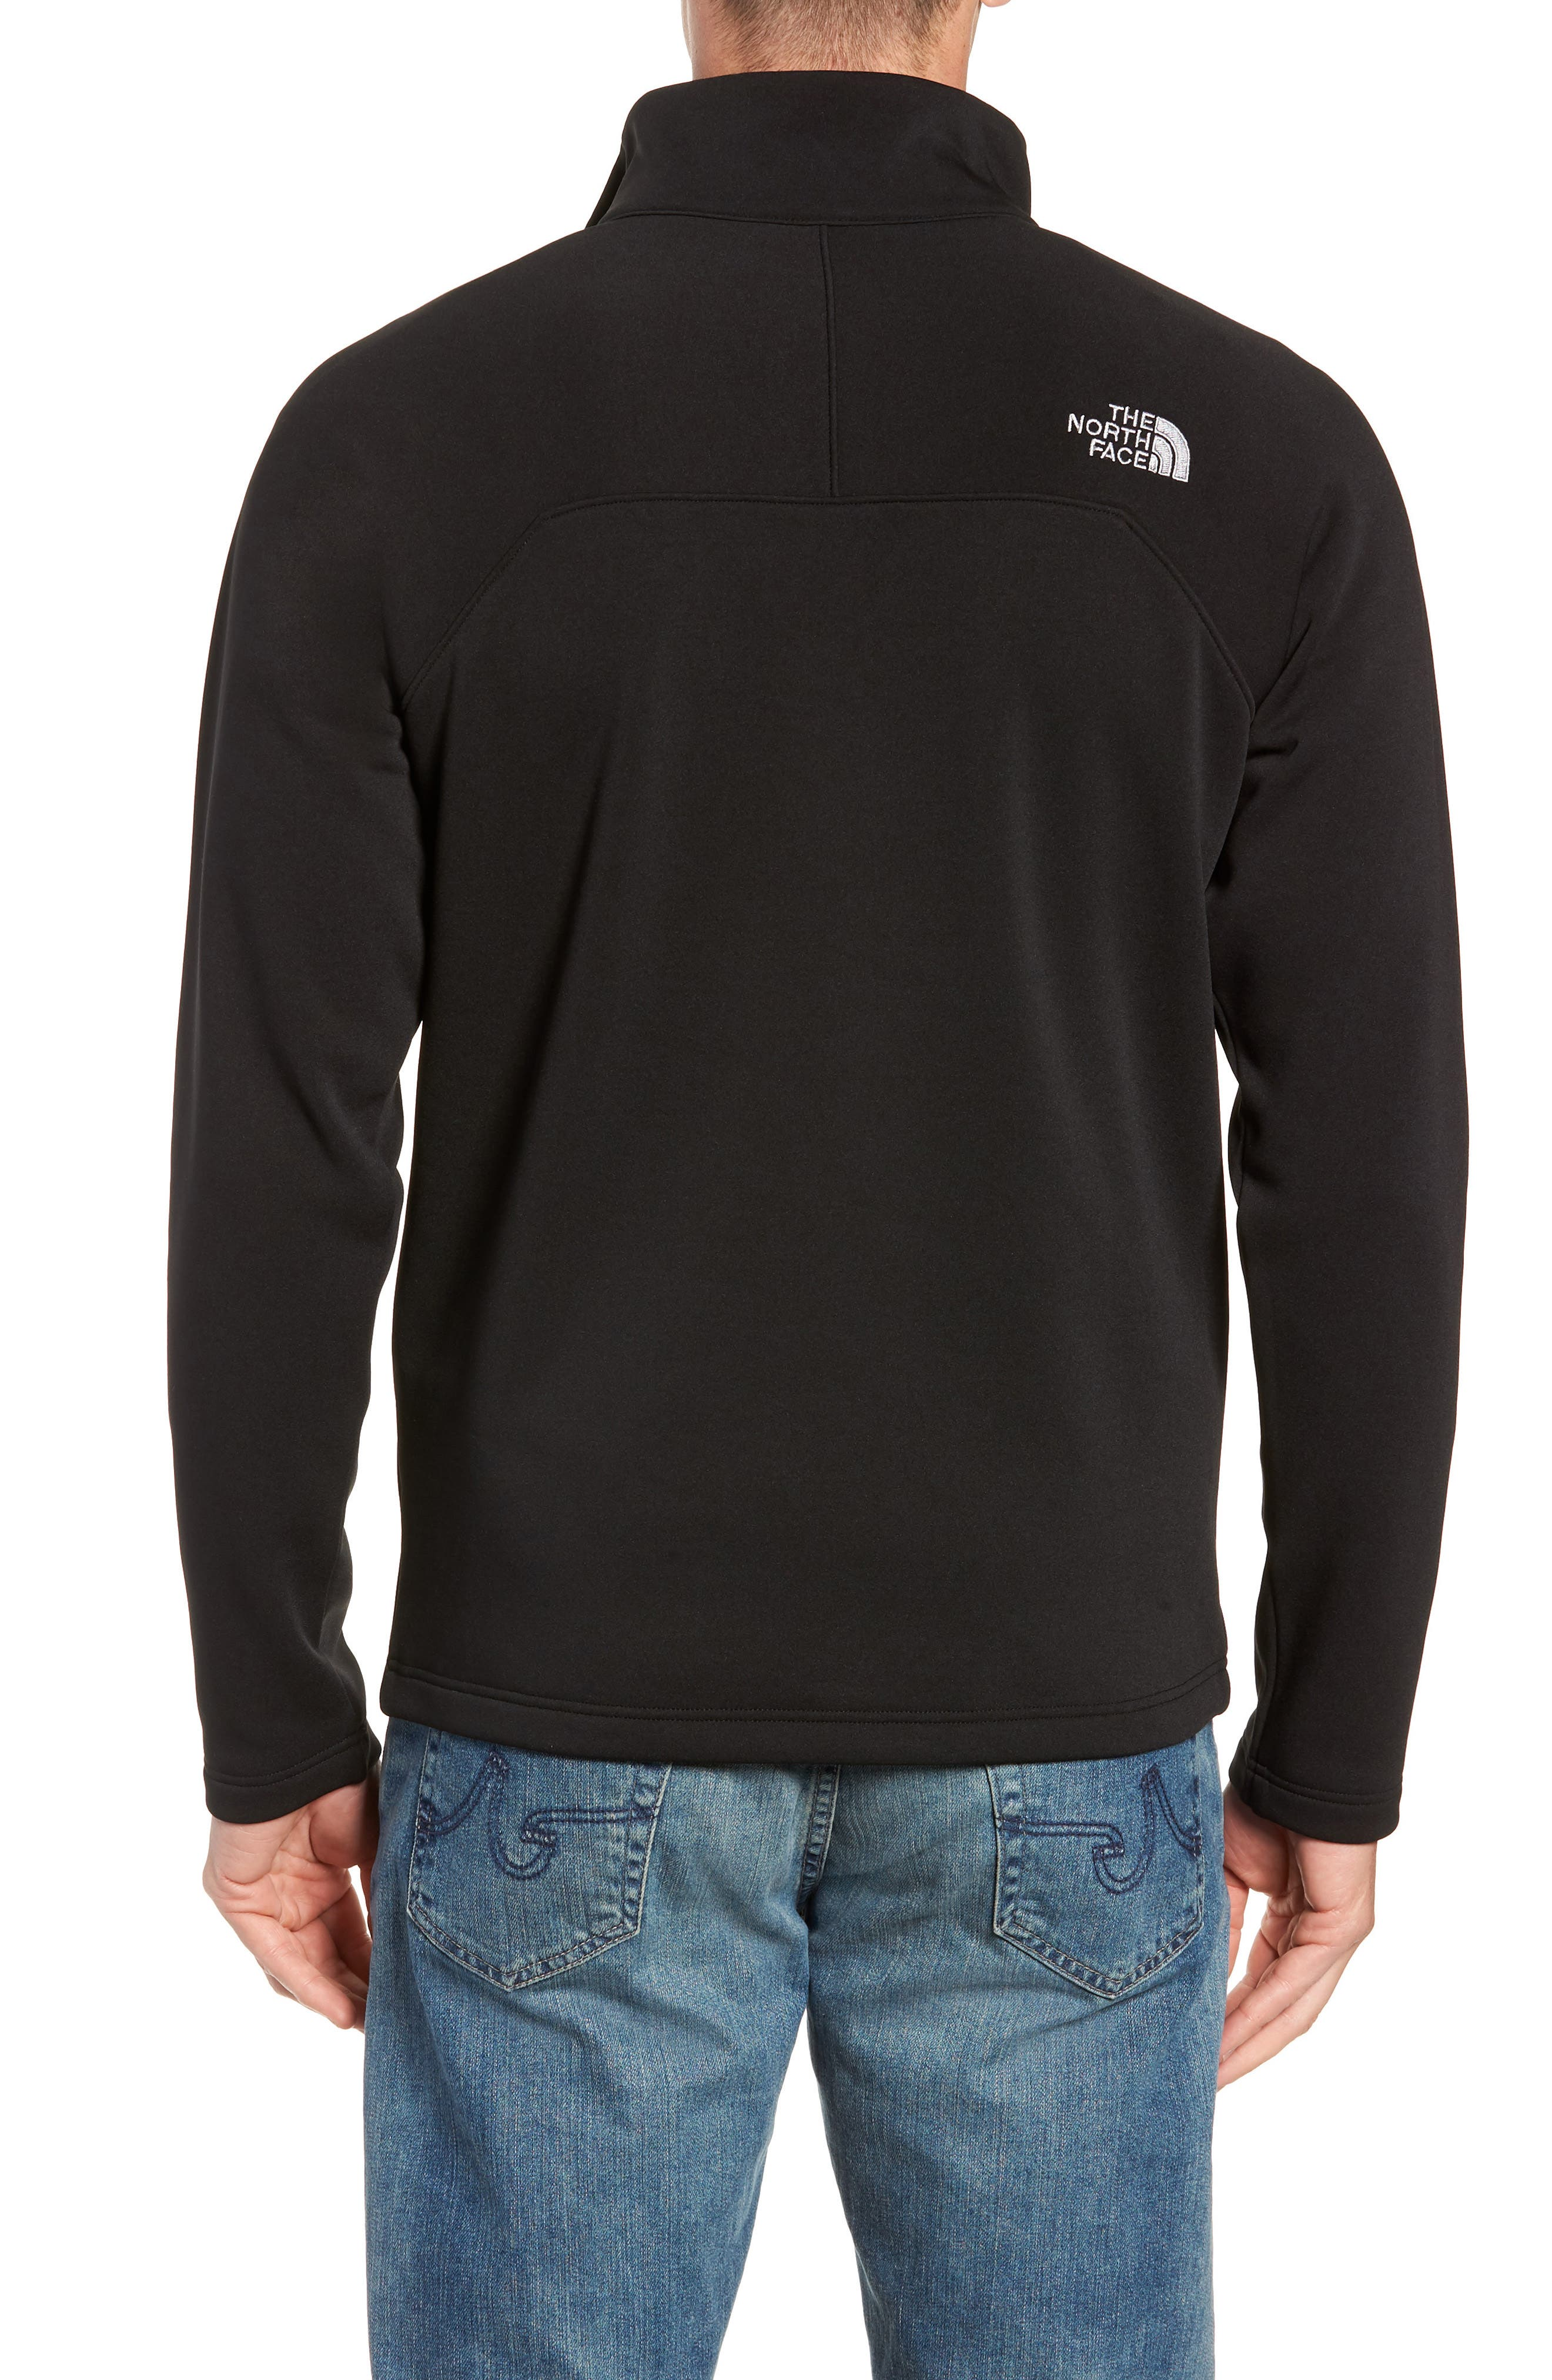 THE NORTH FACE,                             Tenacious Quarter Zip Pullover,                             Alternate thumbnail 2, color,                             001